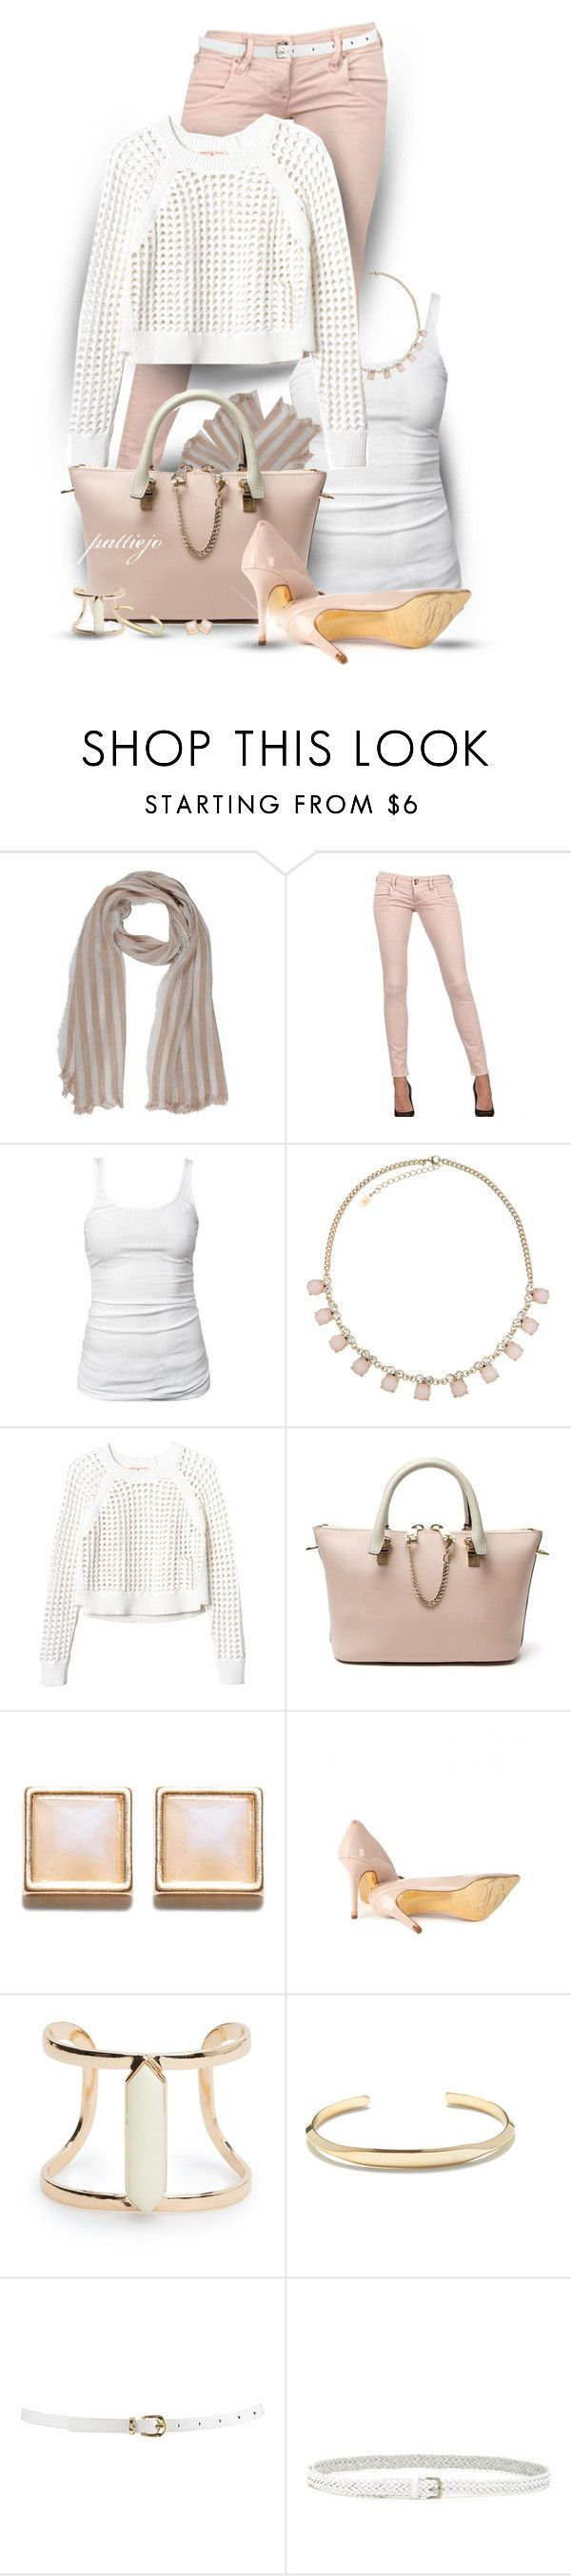 """""""Sweater Weather"""" by rockreborn ❤ liked on Polyvore featuring ANGELINA, CYCLE, James Perse, Rebecca Taylor, Chloé, Warehouse, Ted Baker, MANGO, Jeweliq and Fashion Focus"""